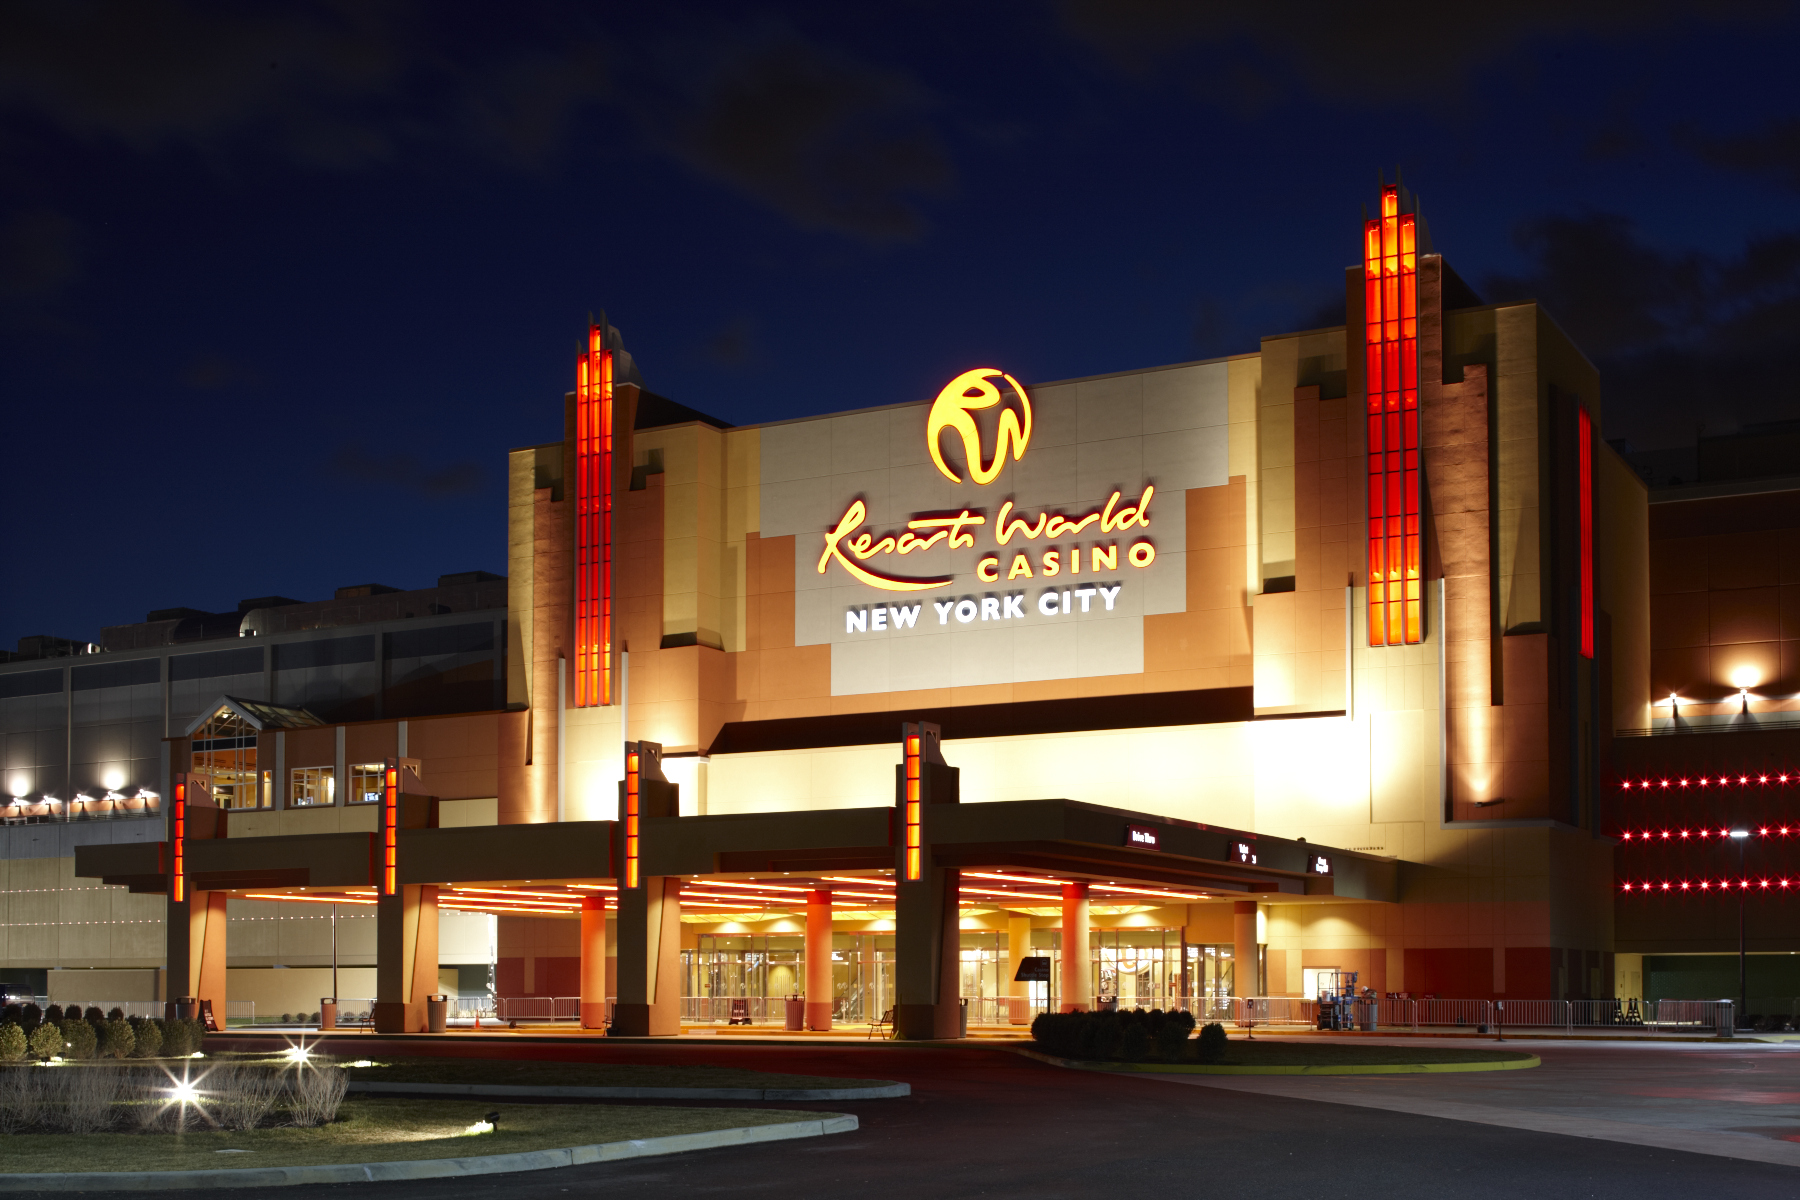 Hollywood casino número sala de pôquer